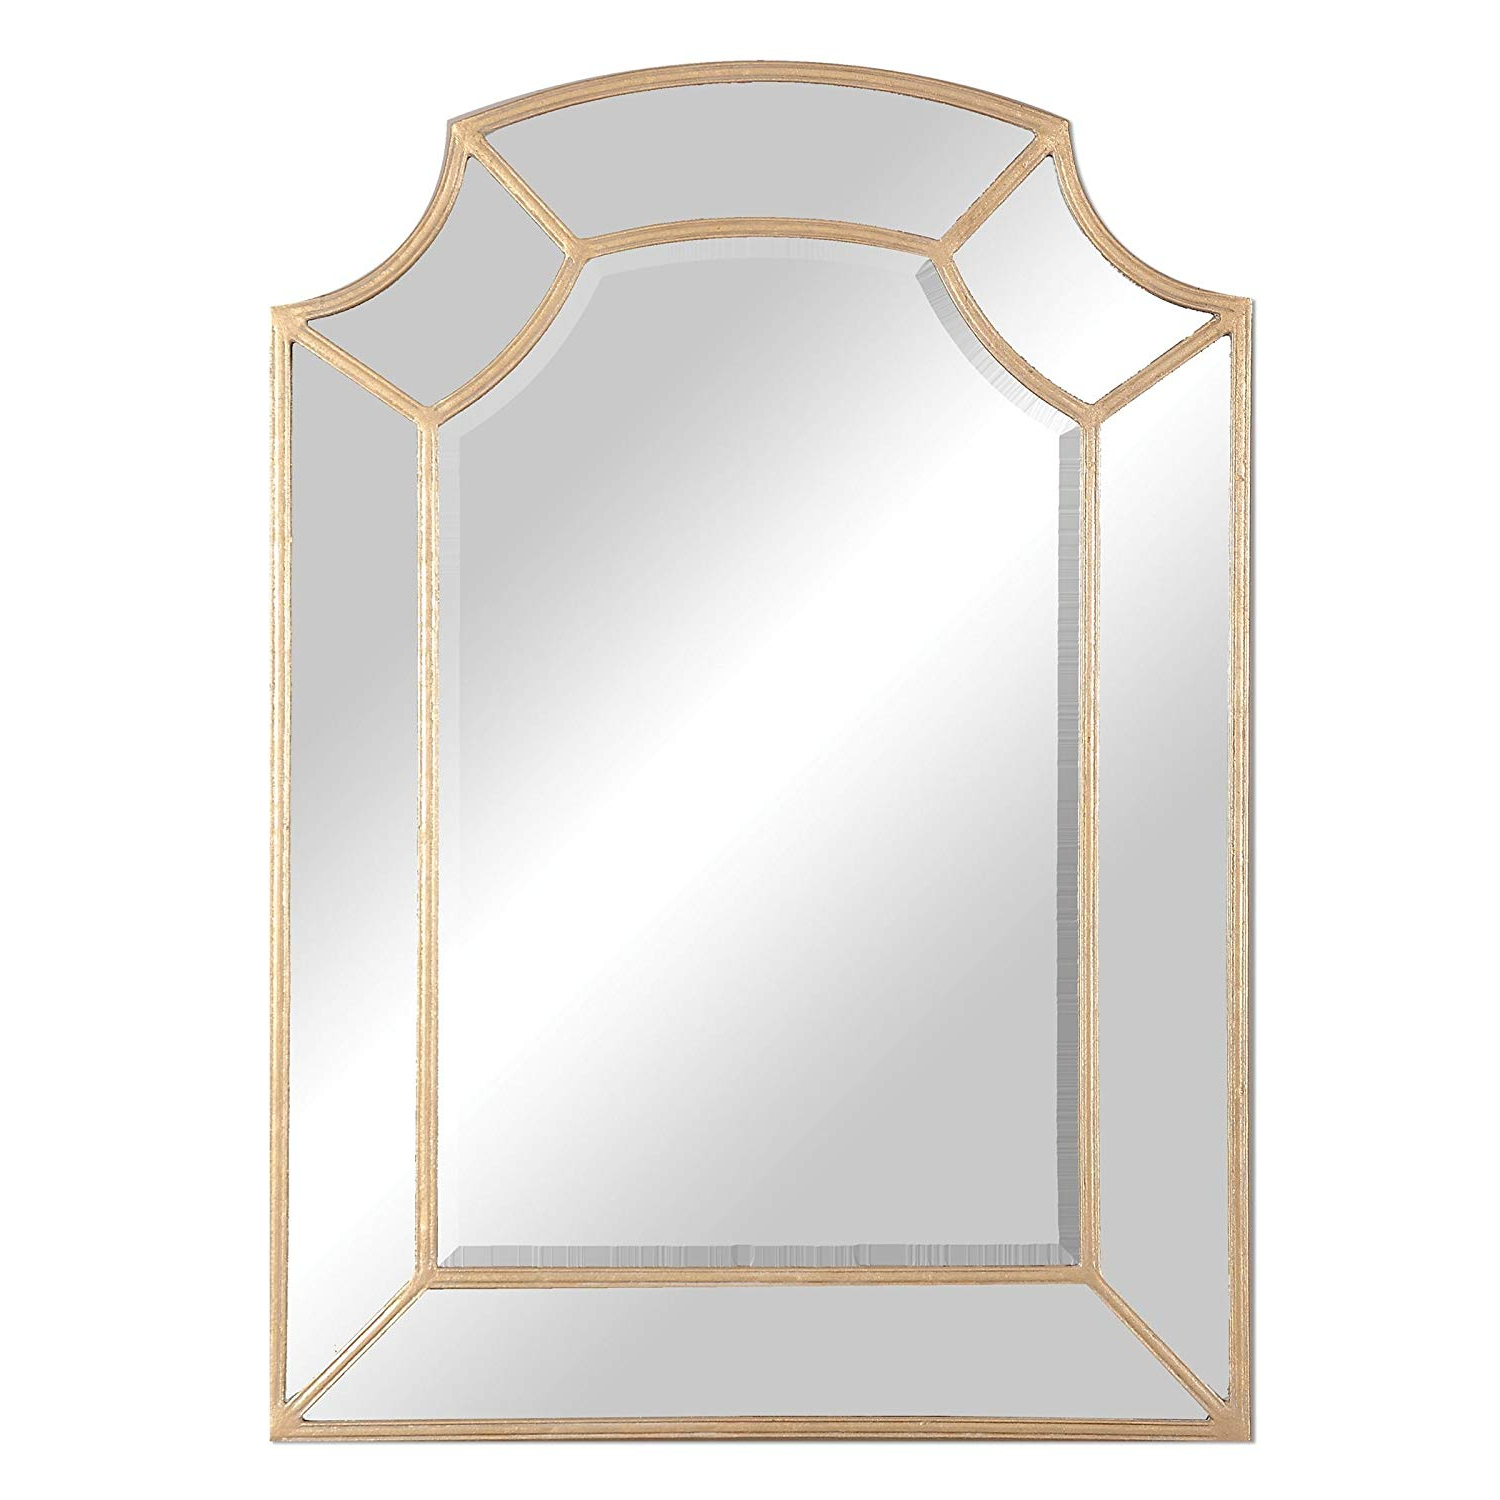 Amazon: Zinc Decor Large Hand Forged Metal Gold Arch Wall Mirror Throughout Fashionable Gold Arch Wall Mirrors (View 5 of 20)